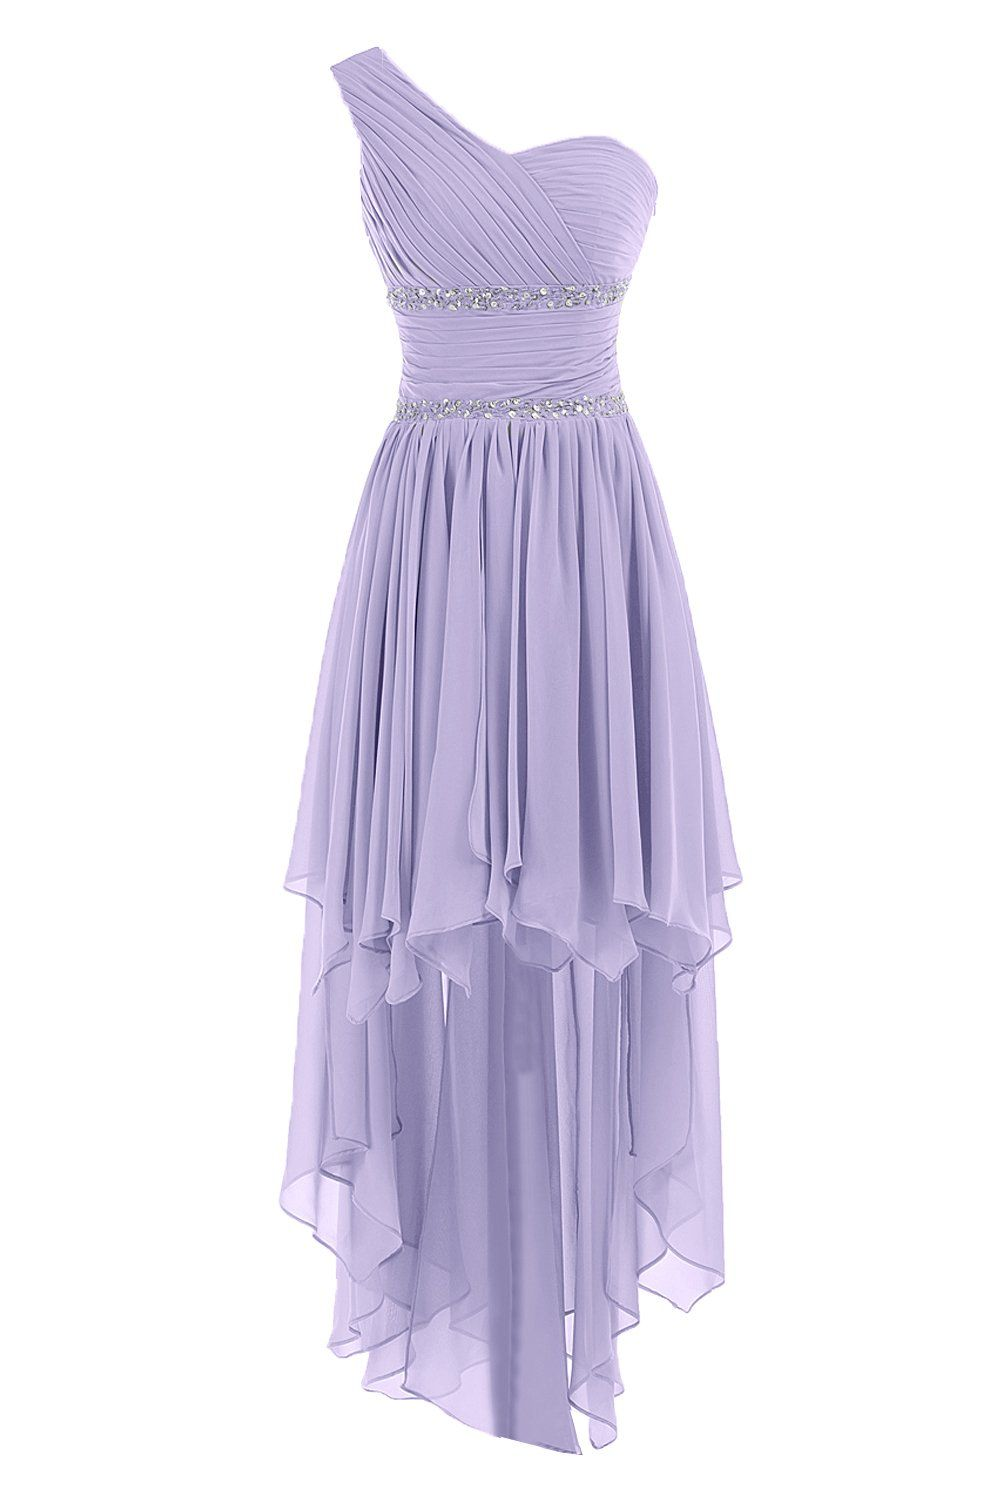 Sunvary one shoulder high low chiffon bridesmaid dresses homecoming